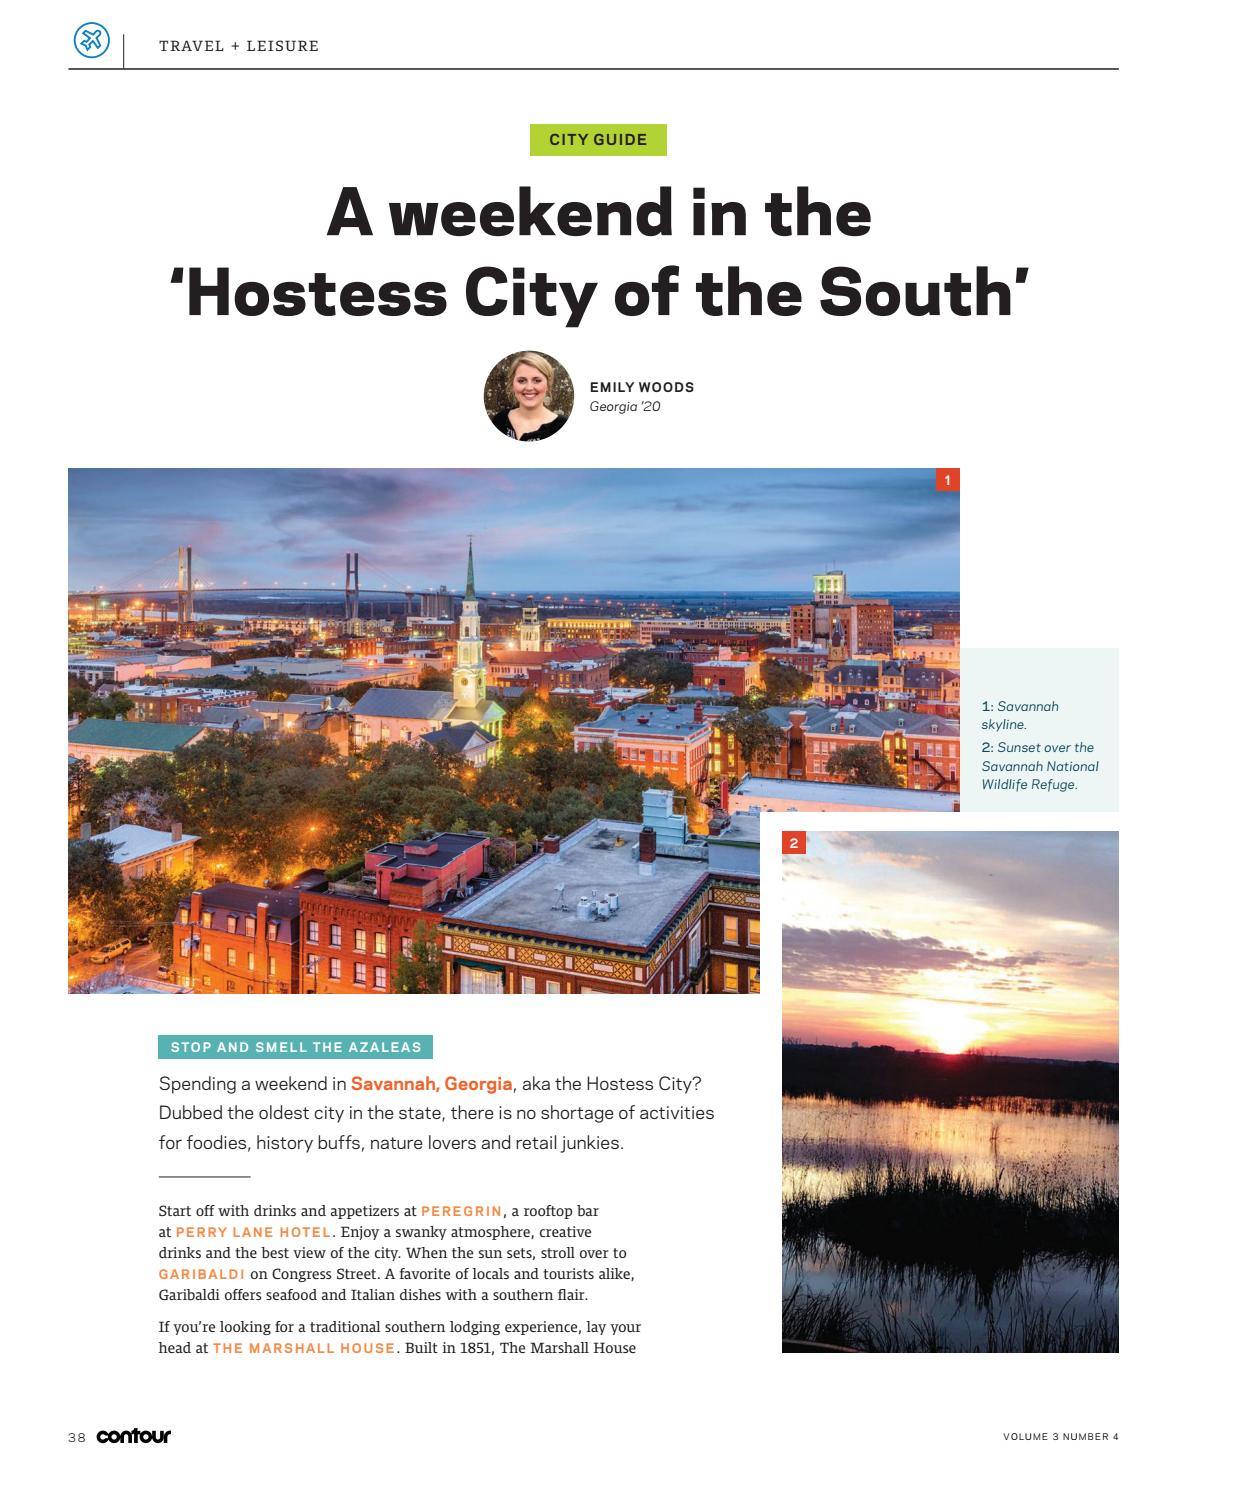 A Weekend in the 'Hostess City of the South,' Emily Woods, C